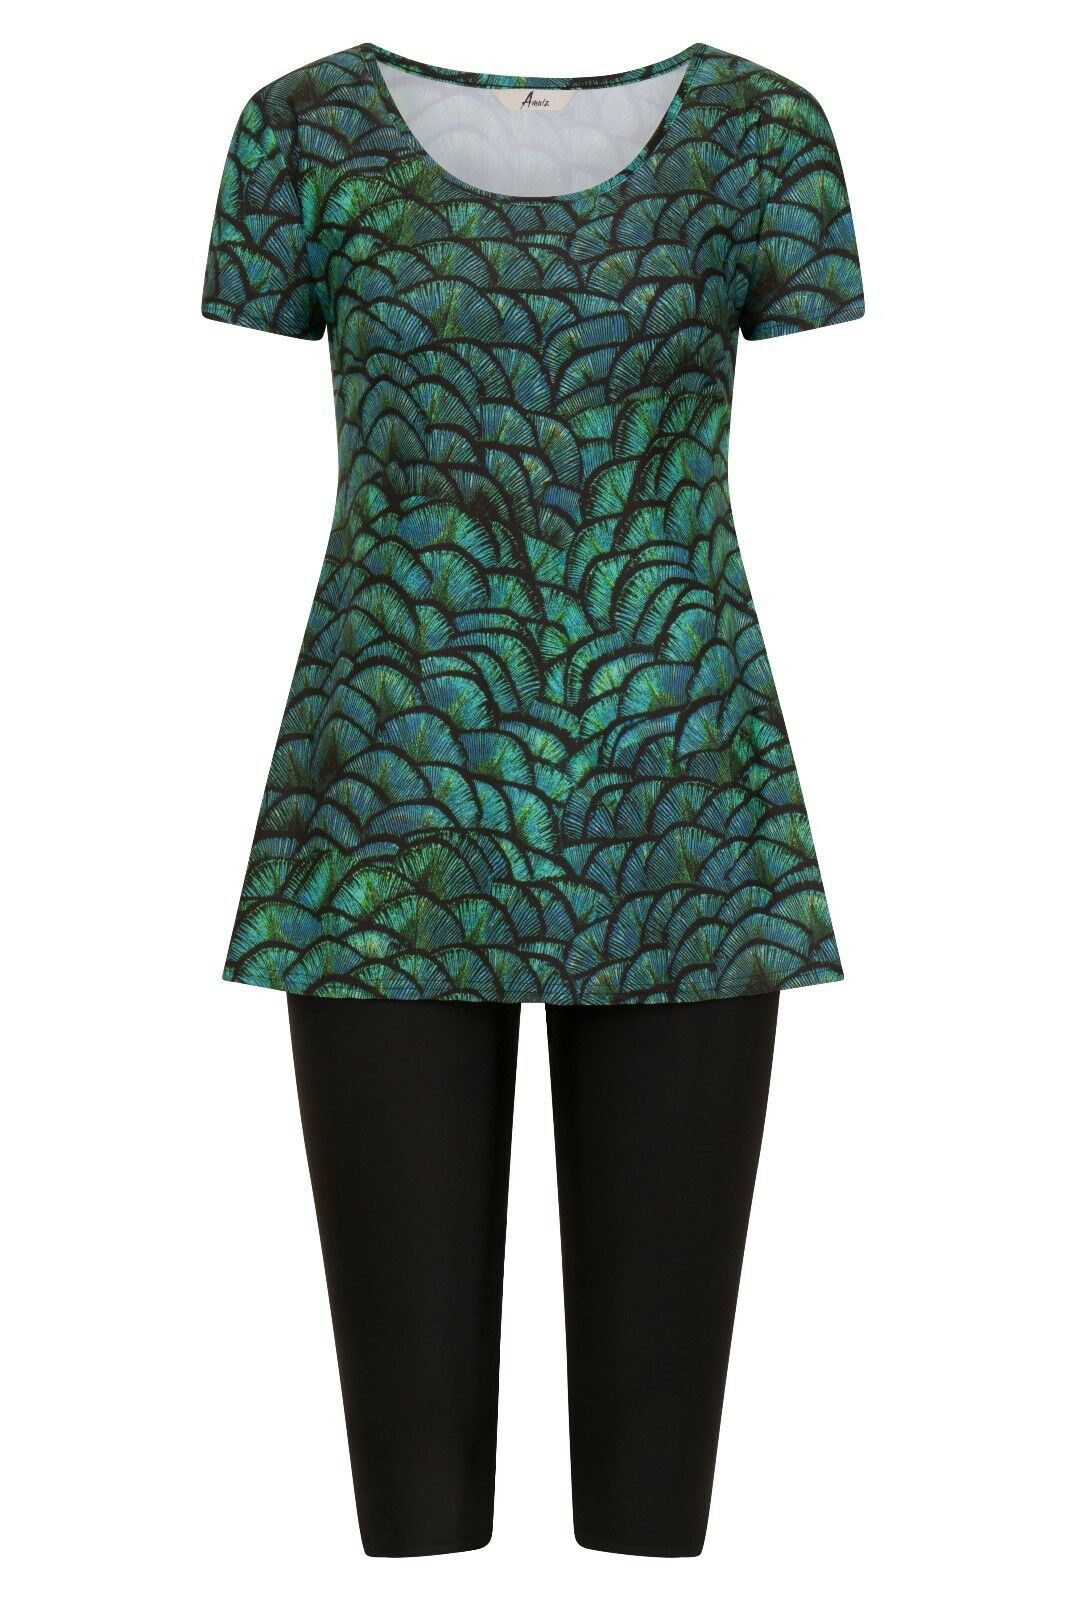 Amaiz Dragon Scales Green Swimdress - Modest Swimwear - Burkini